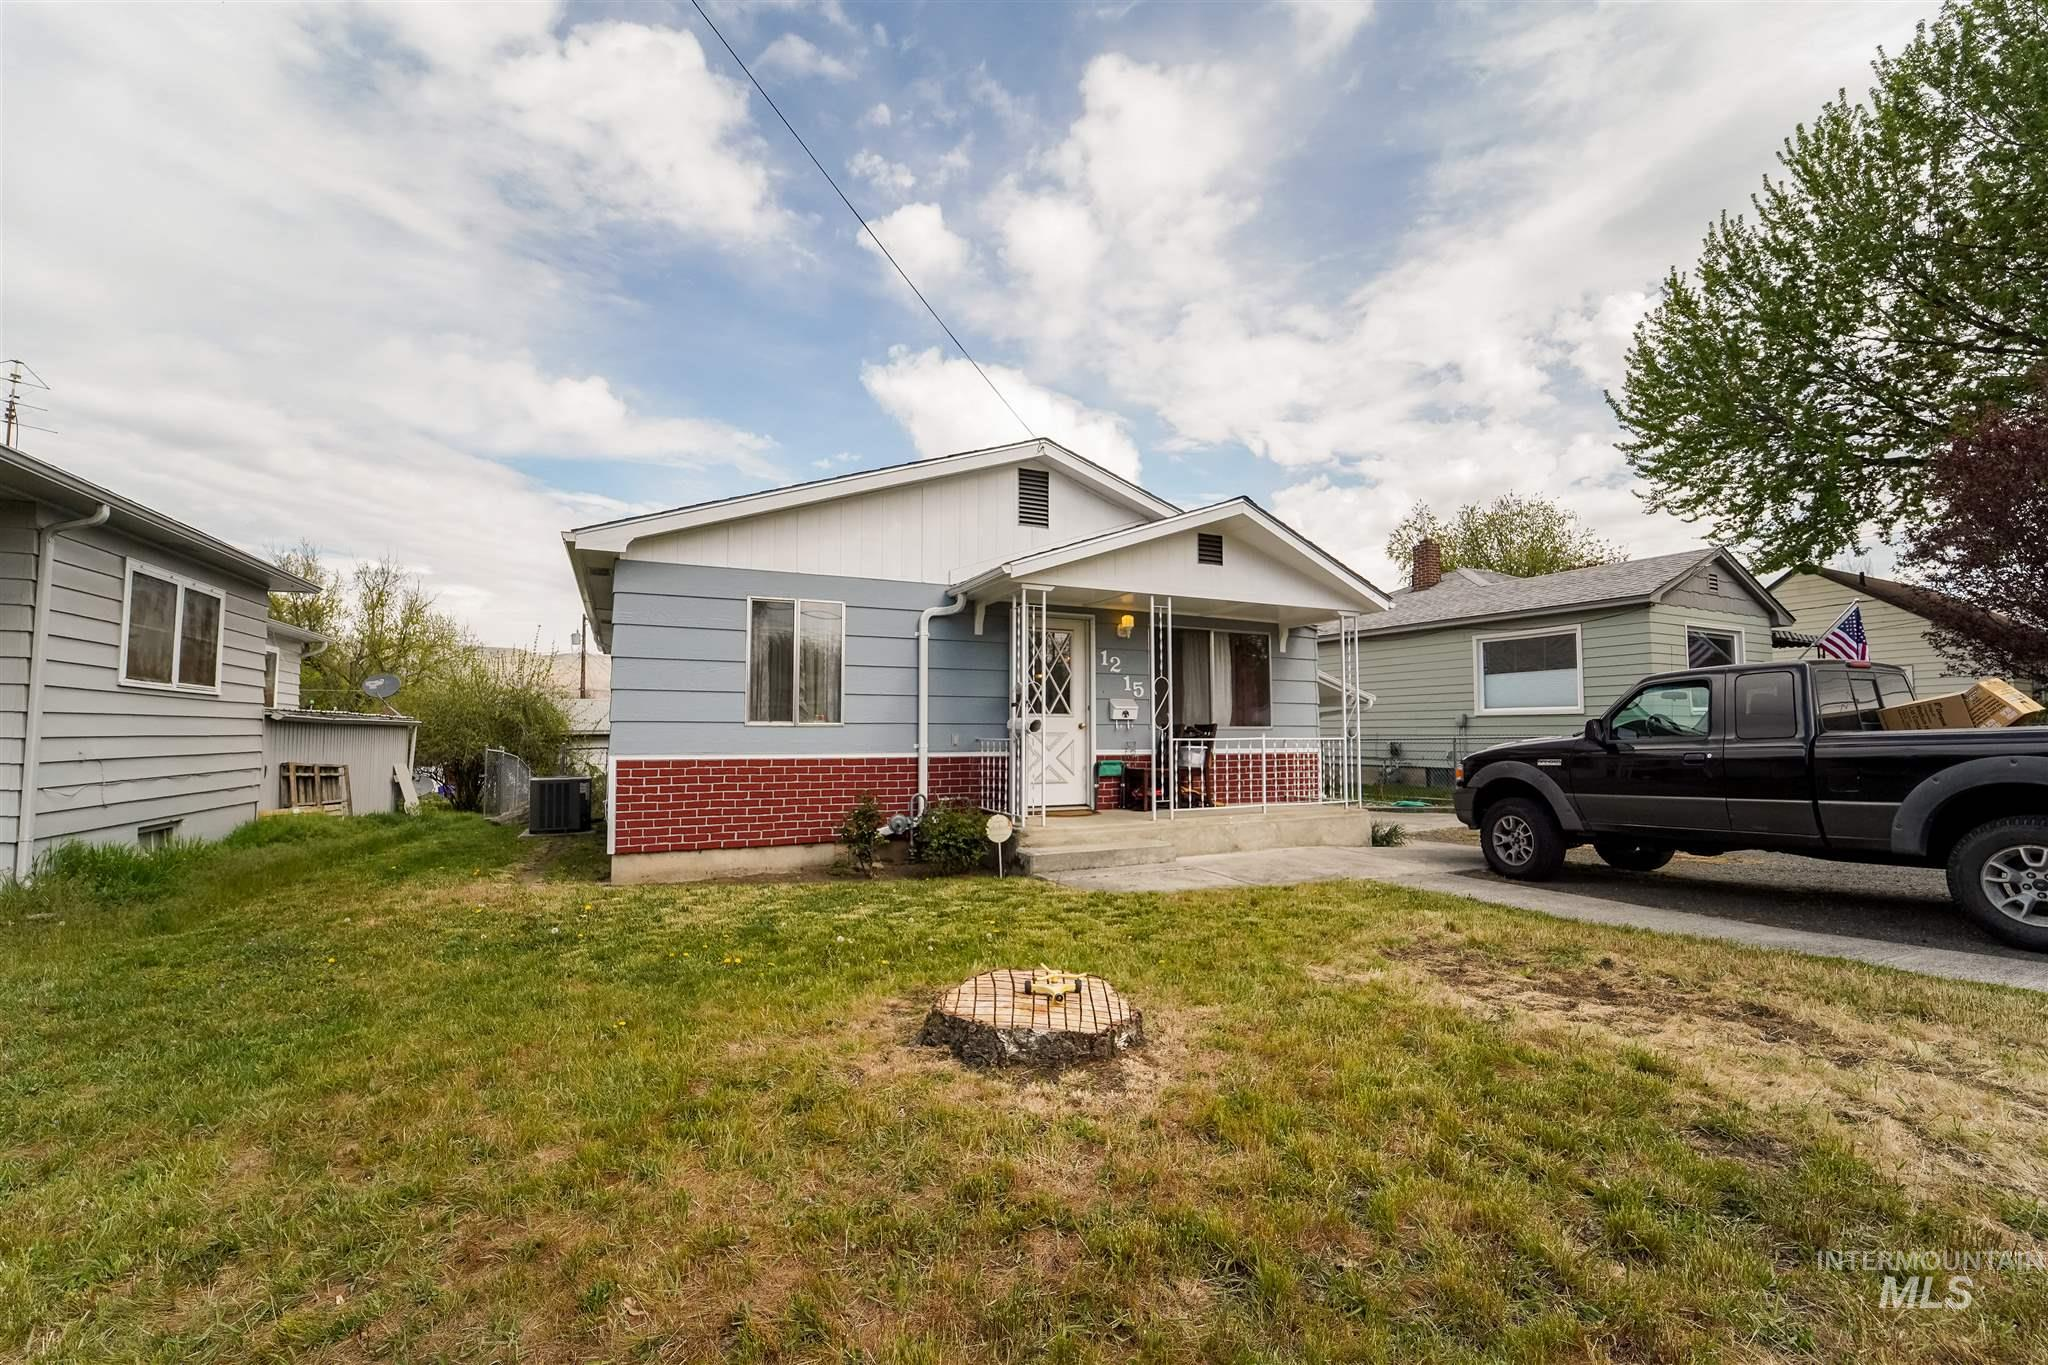 1215 N St Property Photo - Lewiston, ID real estate listing